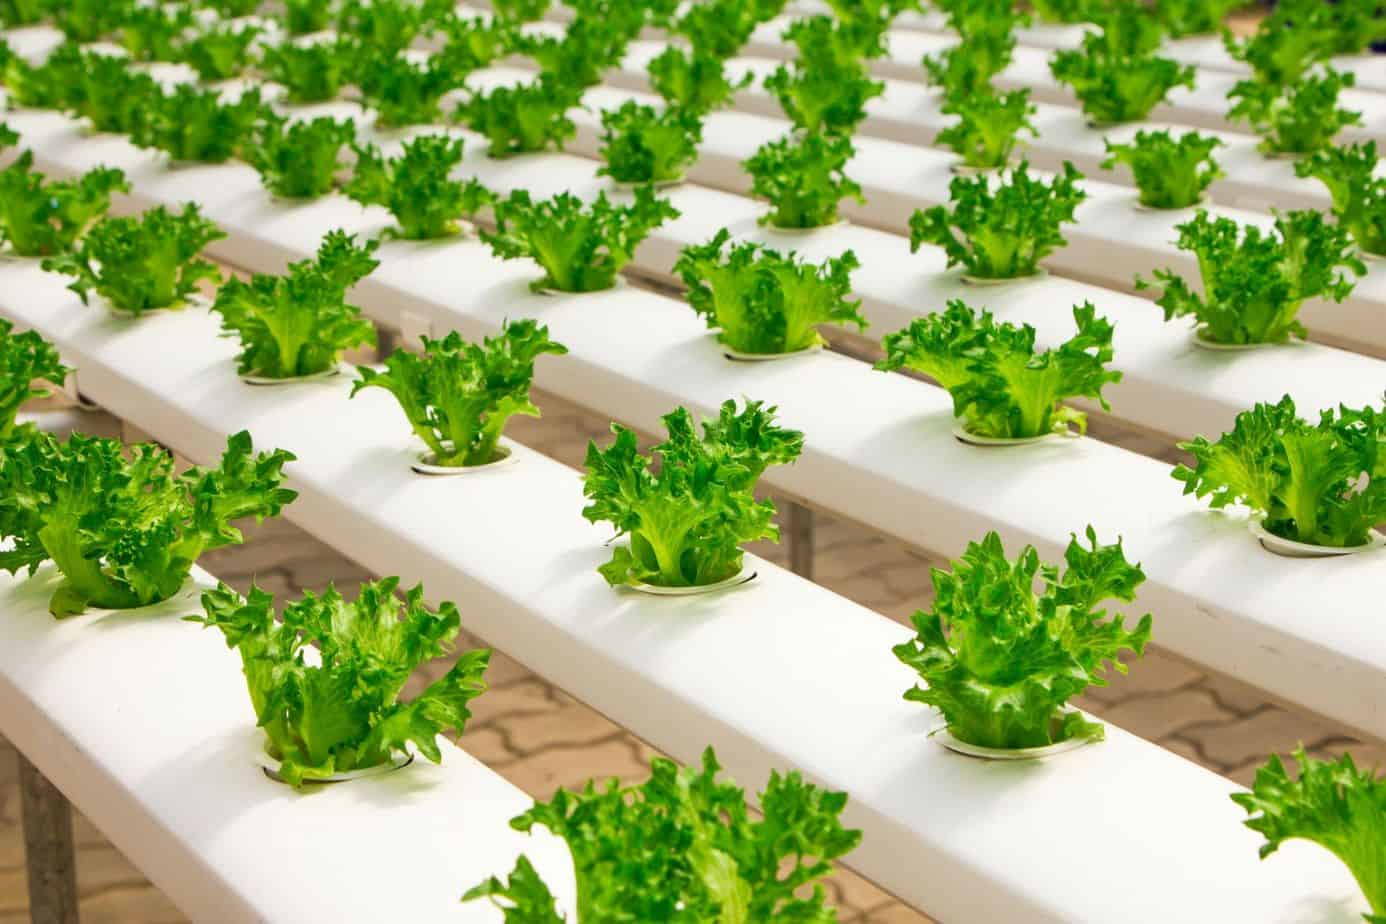 How Advancing Technology Takes Small Farming to New Levels